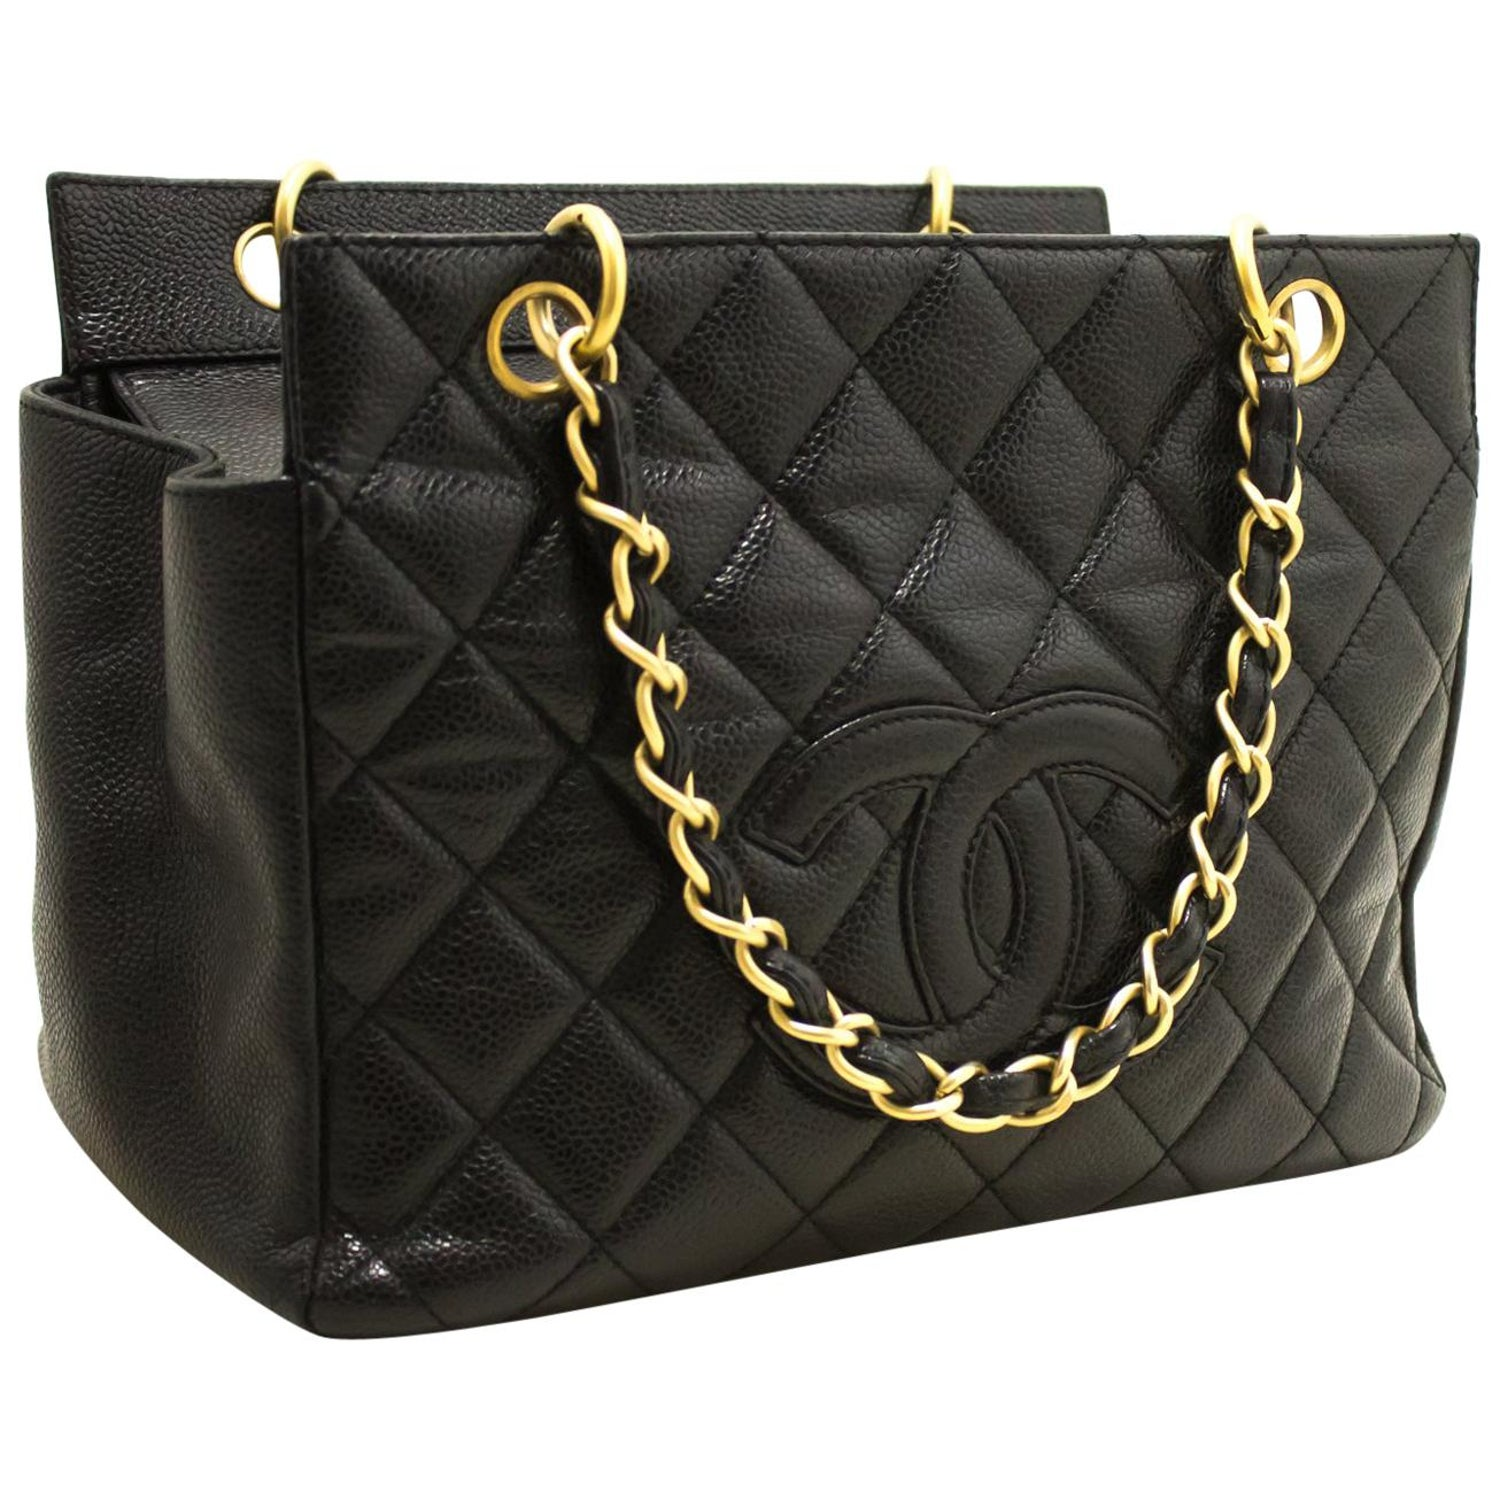 f3281a680ca914 Chanel Caviar Chain Handping Tote Bag Black Quilted Purse